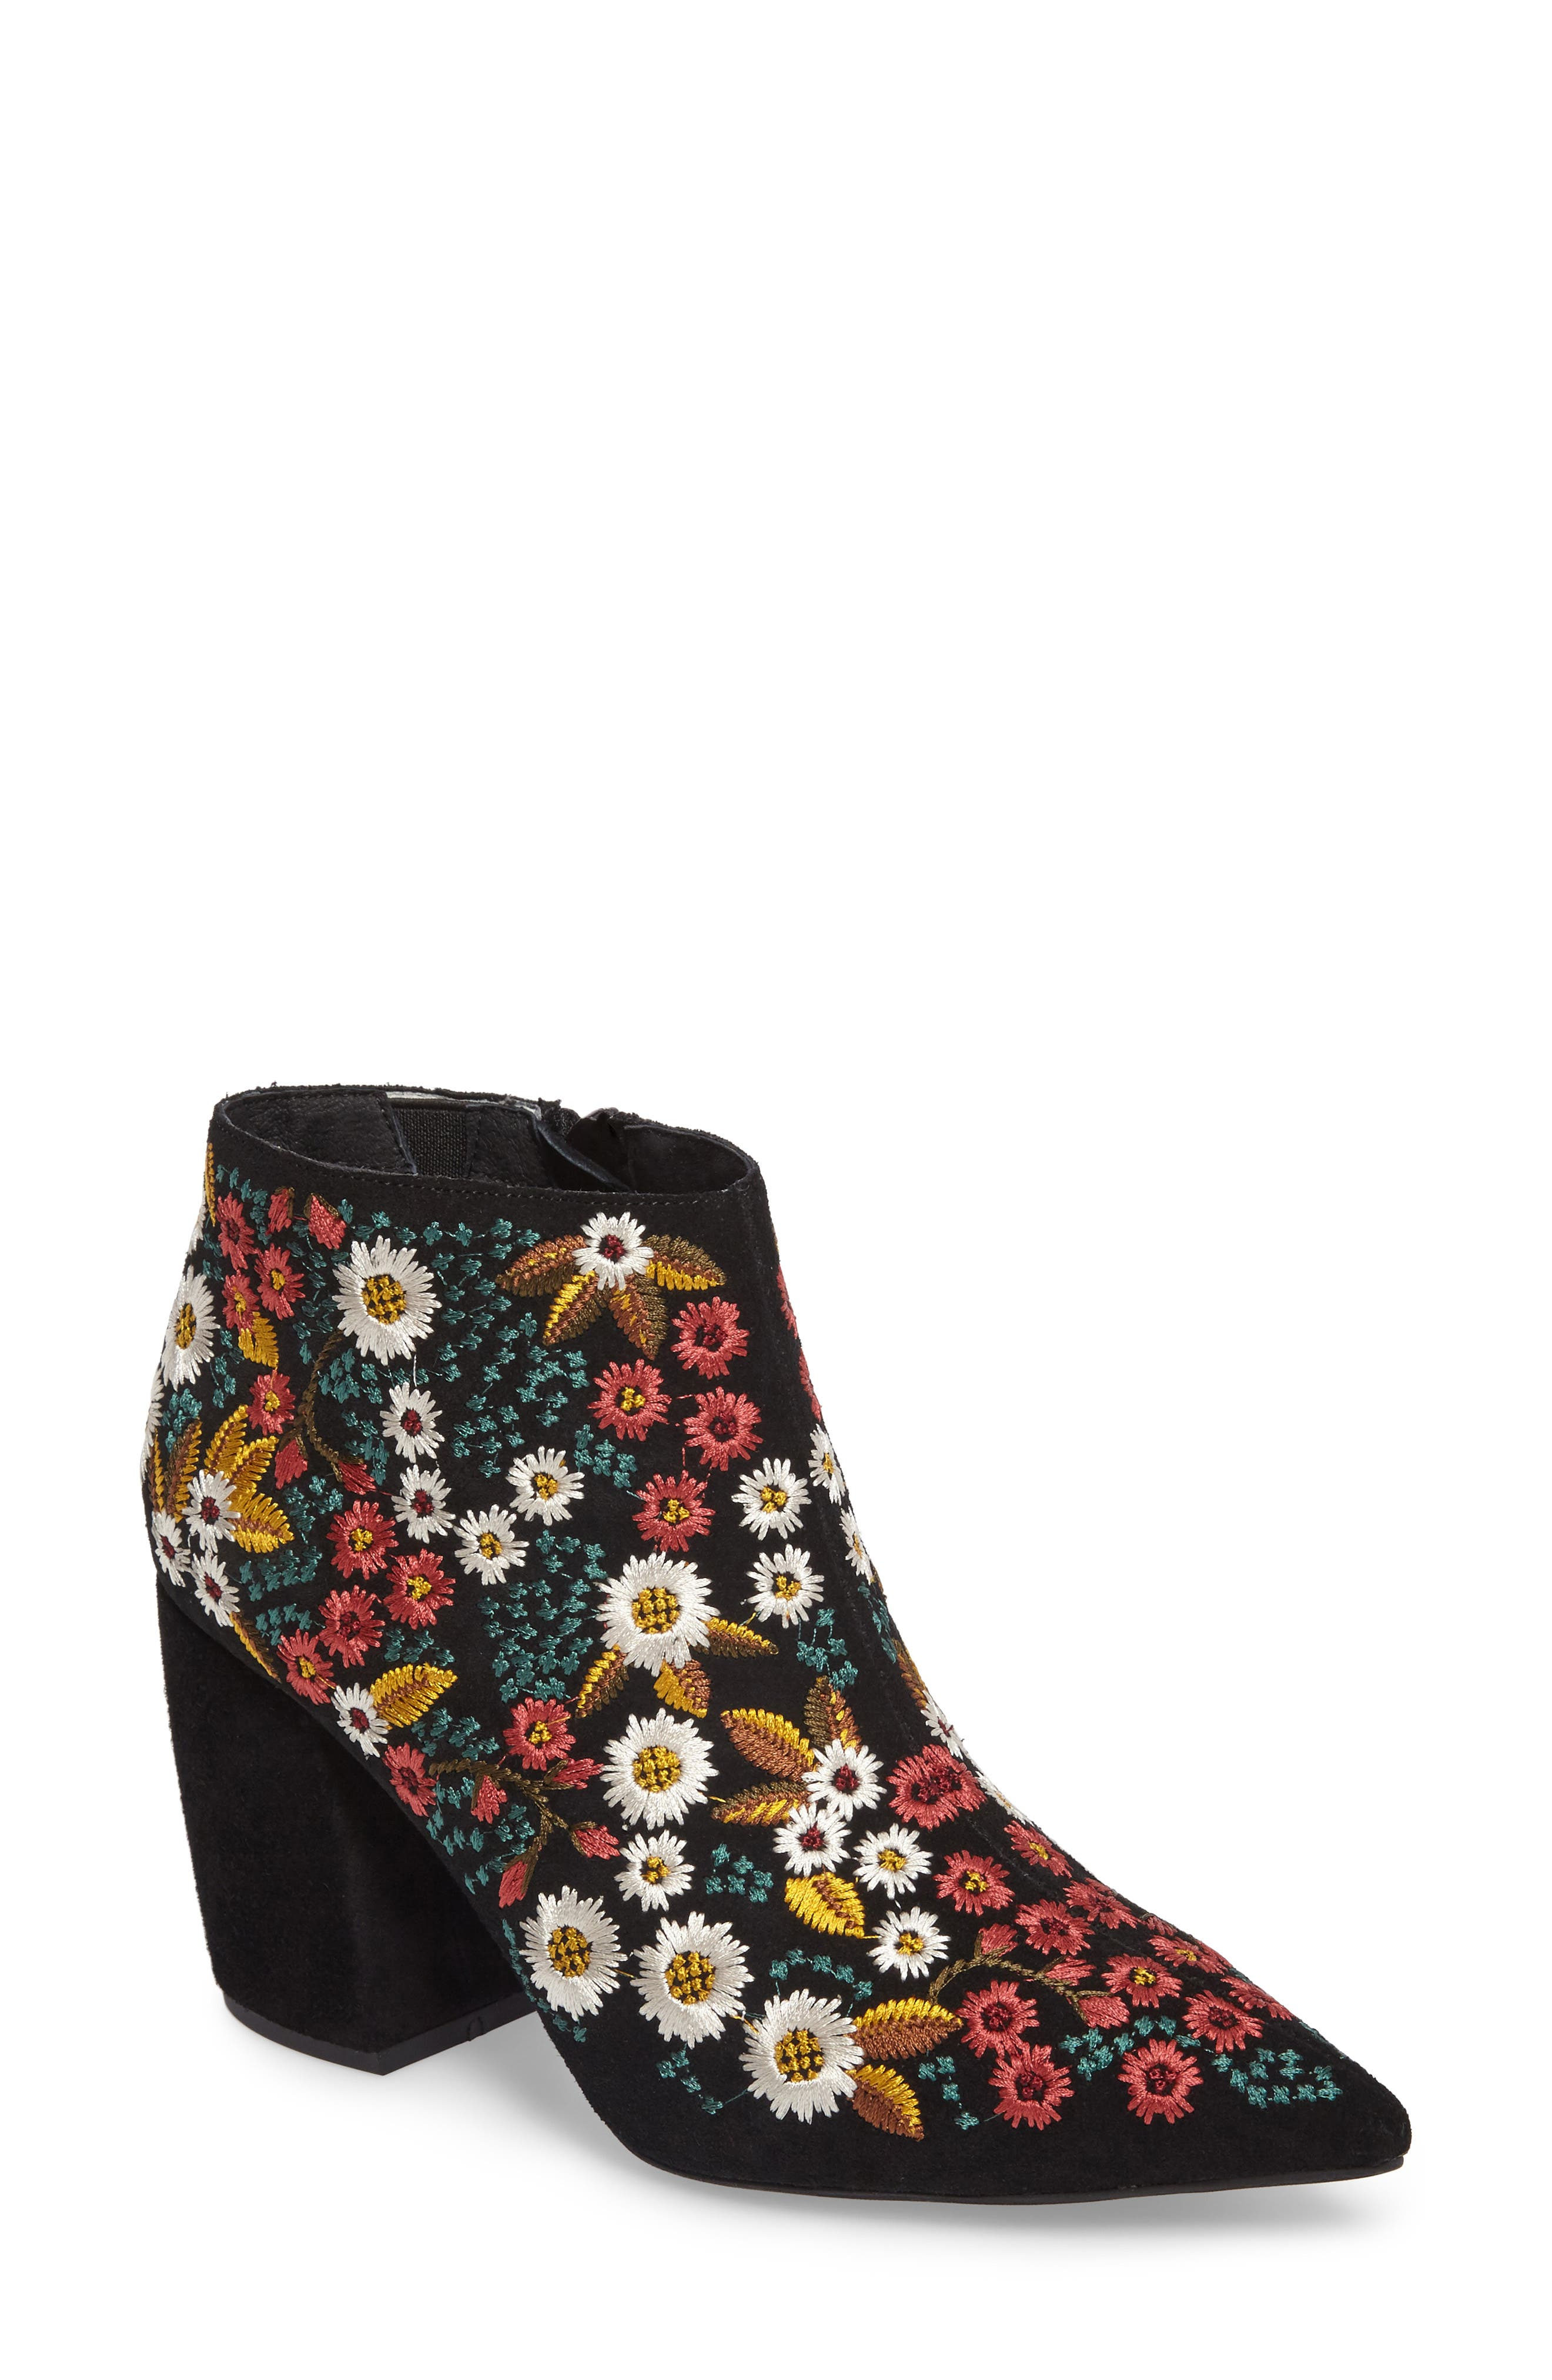 Main Image - Jeffrey Campbell Total Ankle Bootie (Women)